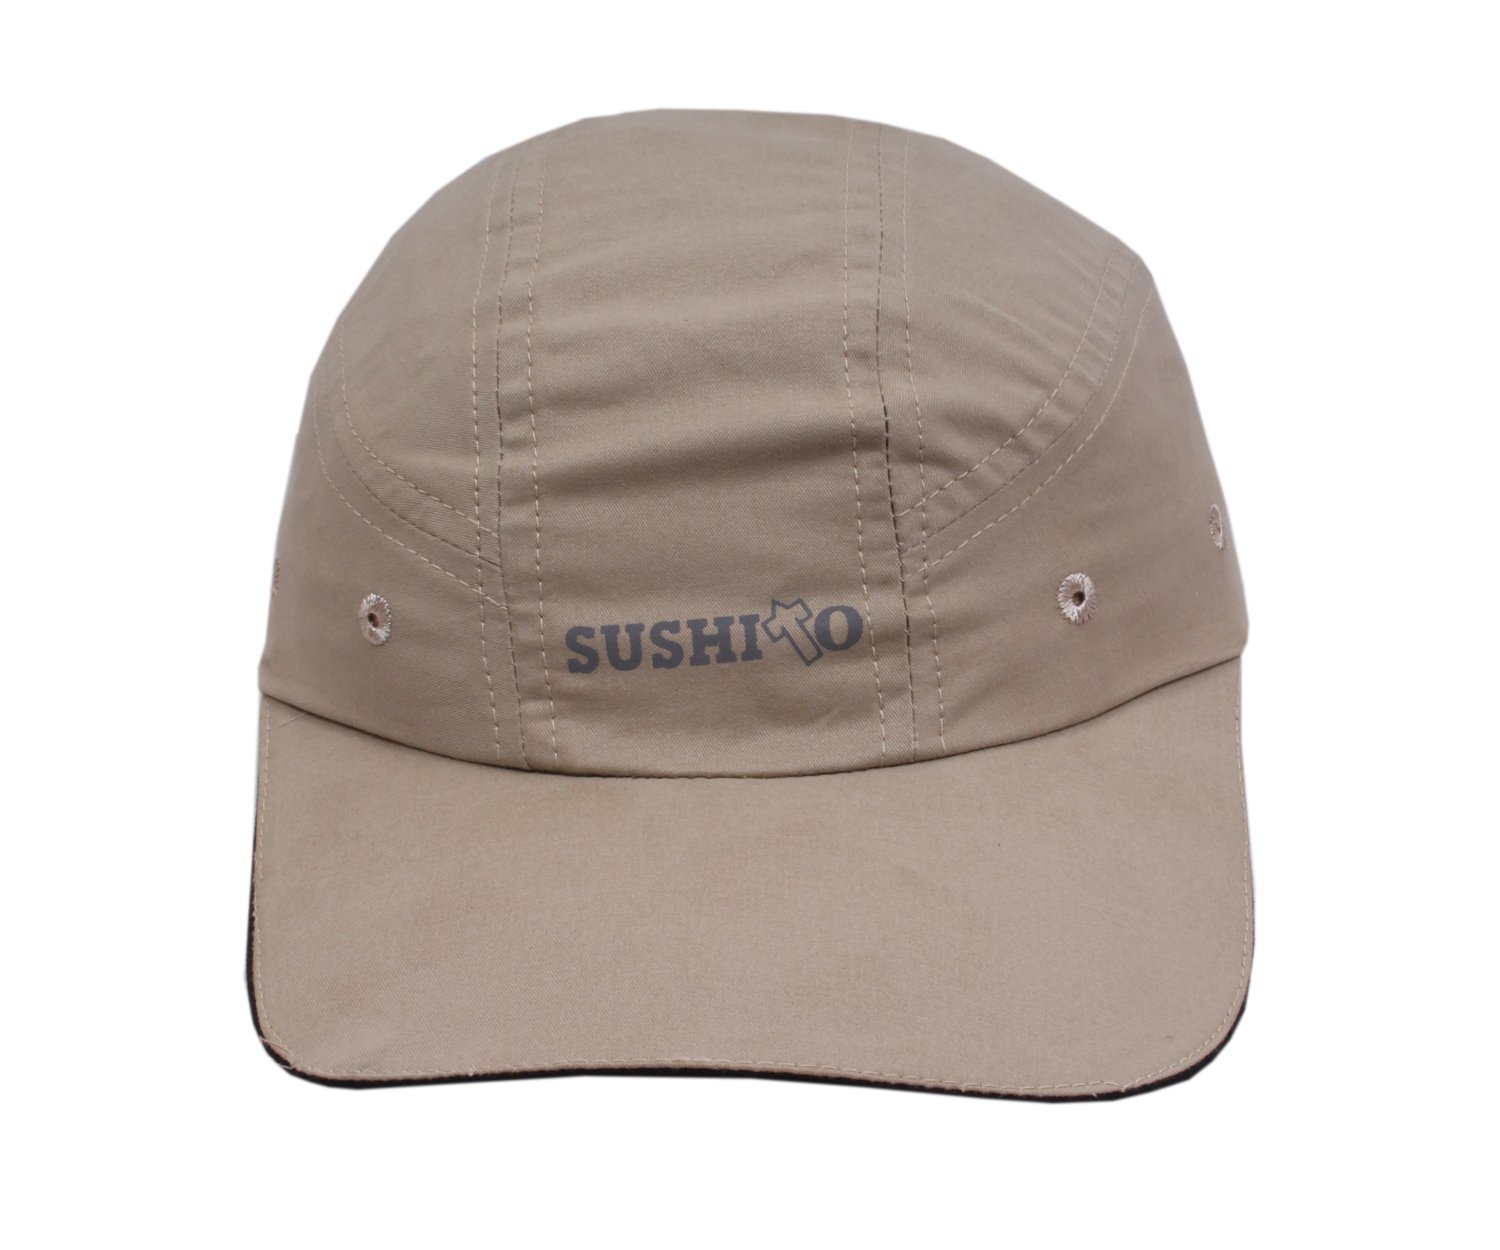 779f285399f Buy Sushito Stylish Sport Summer Cap Online at Low Prices in India -  Amazon.in